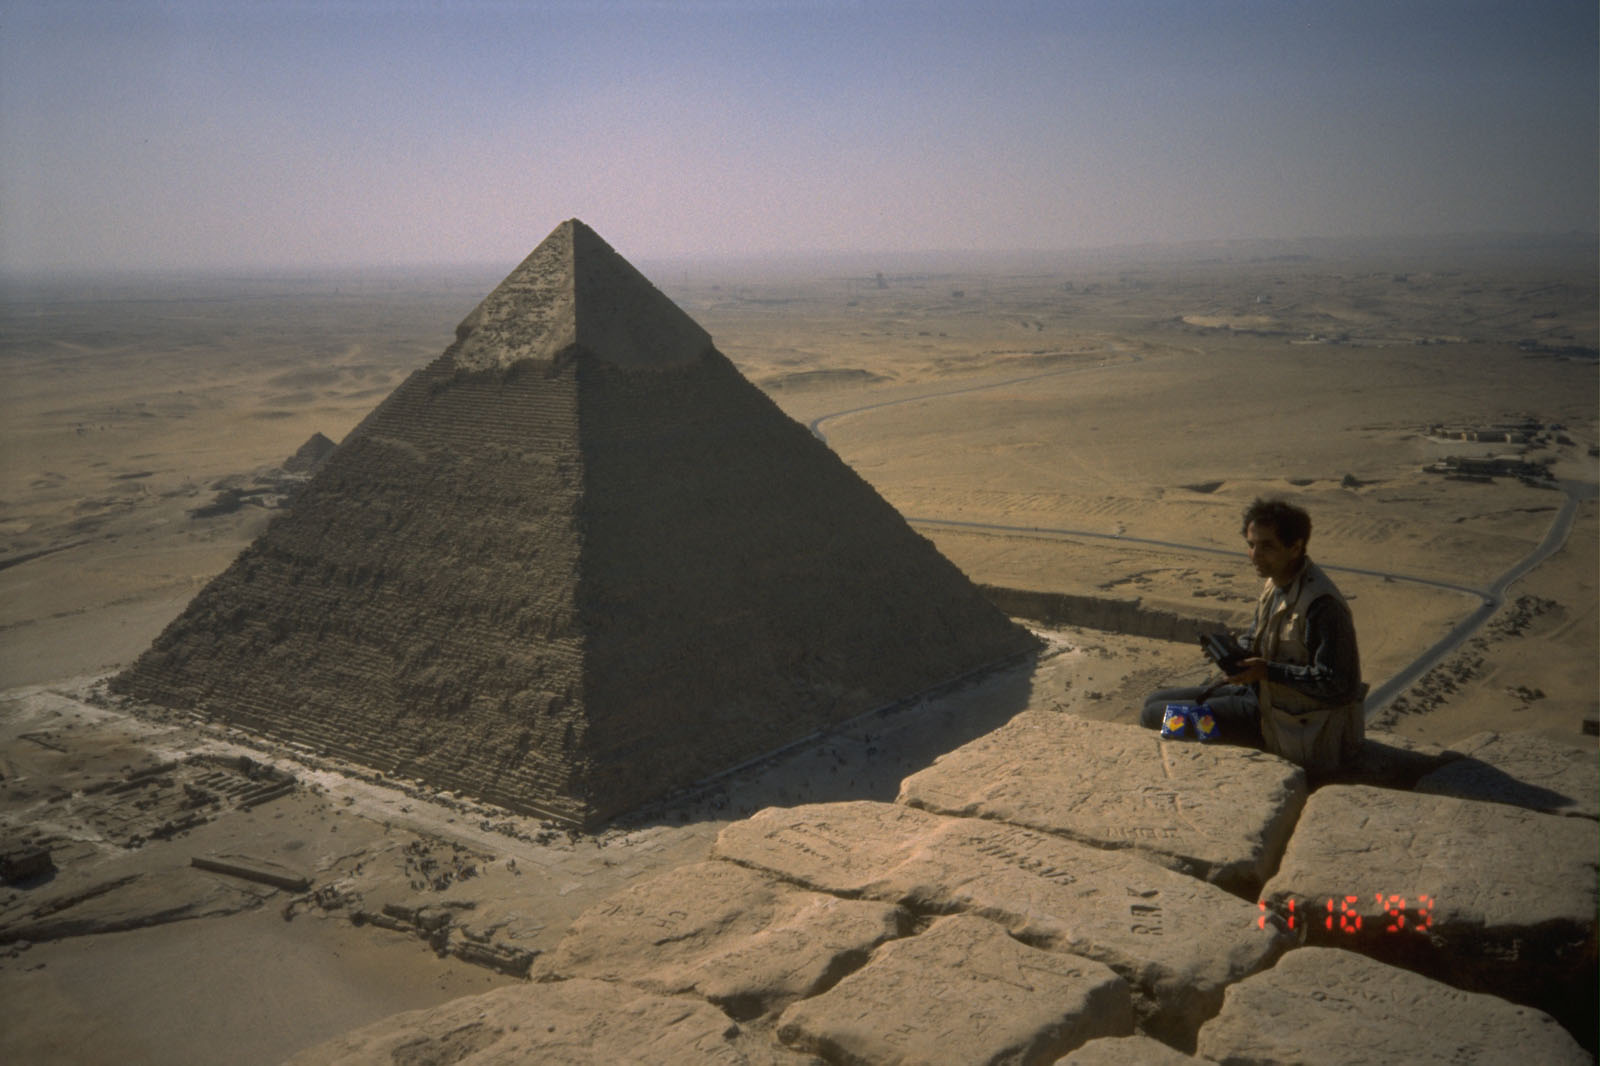 People & places: Site: Giza; View: Khufu pyramid, Khafre pyramid